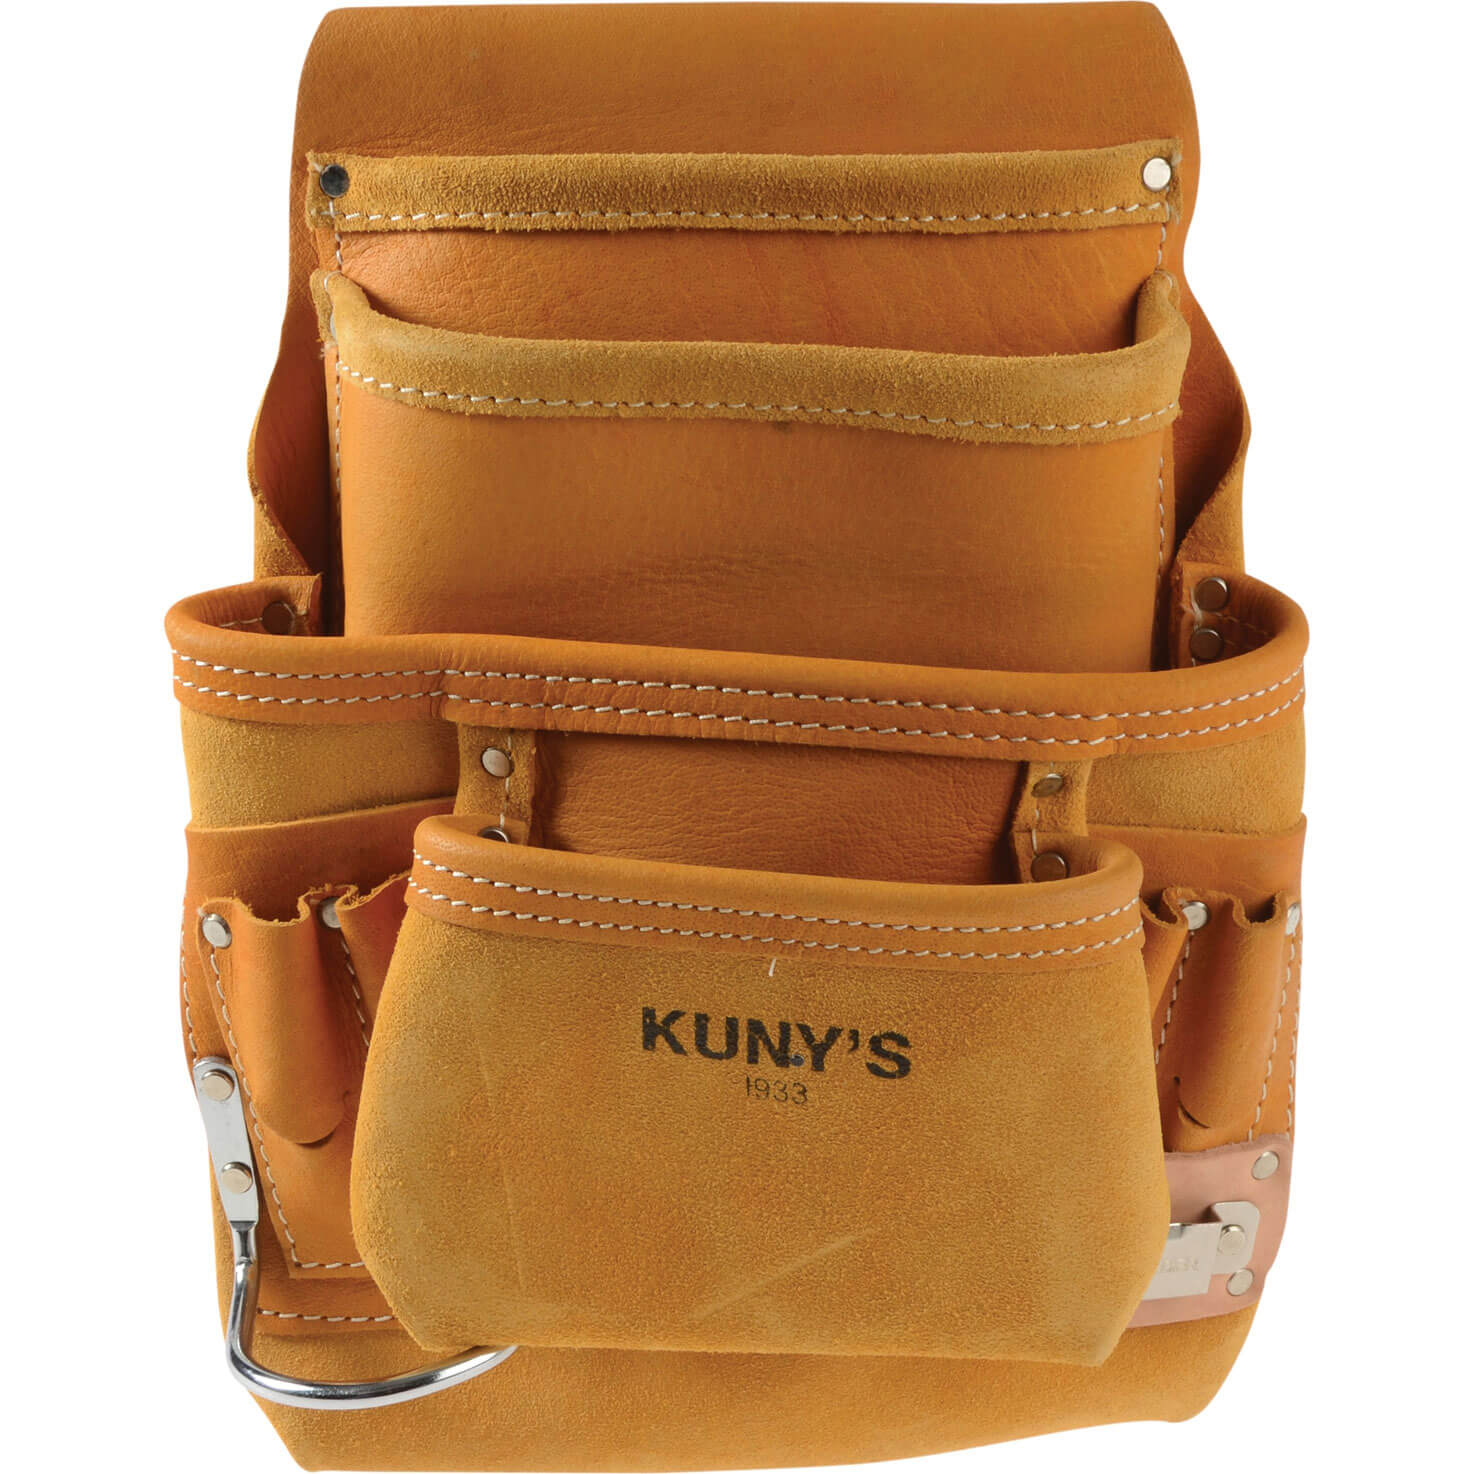 Image of Kunys 10 Pocket Carpenters Nail & Tool Bag